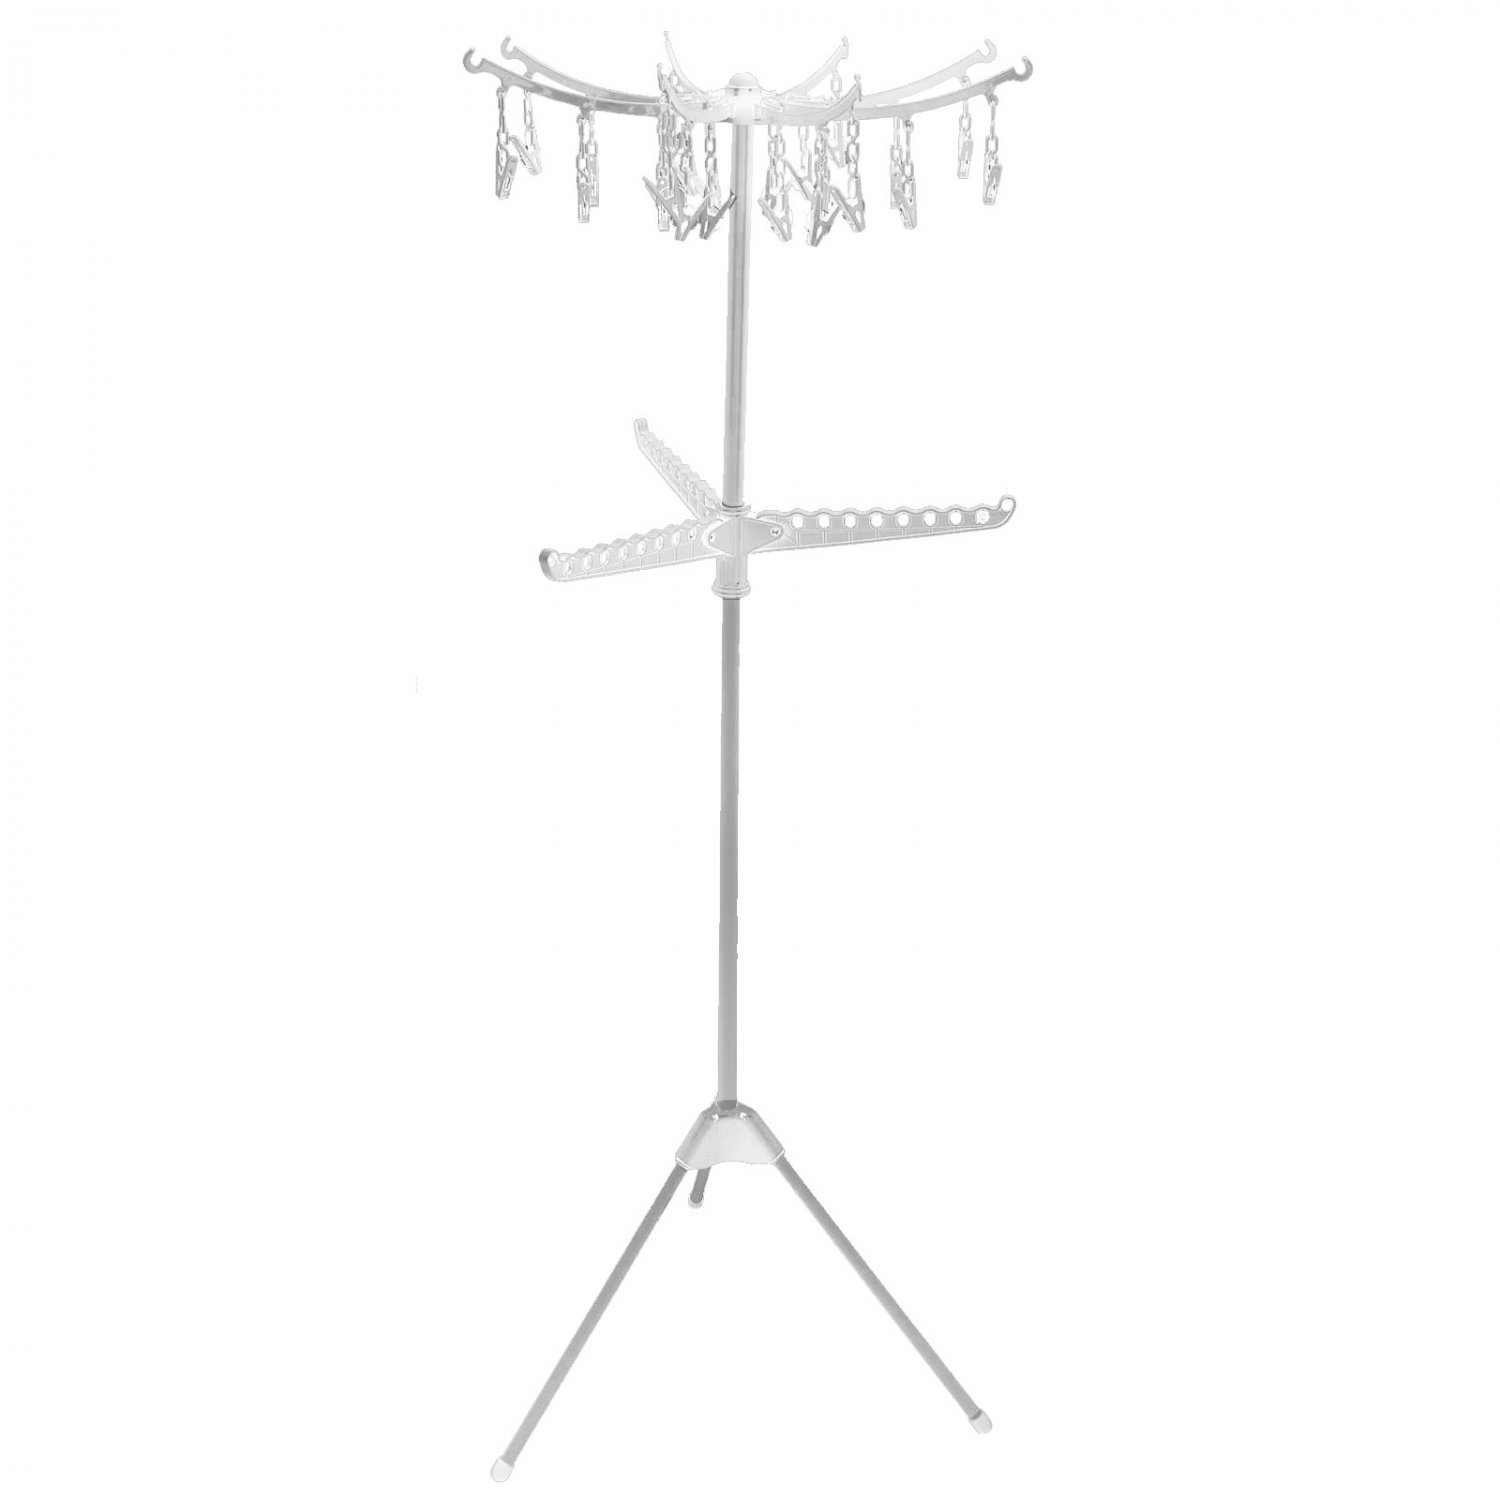 Portable Folding Indoor Multi Clothes Airer Laundry Hanger Dryer